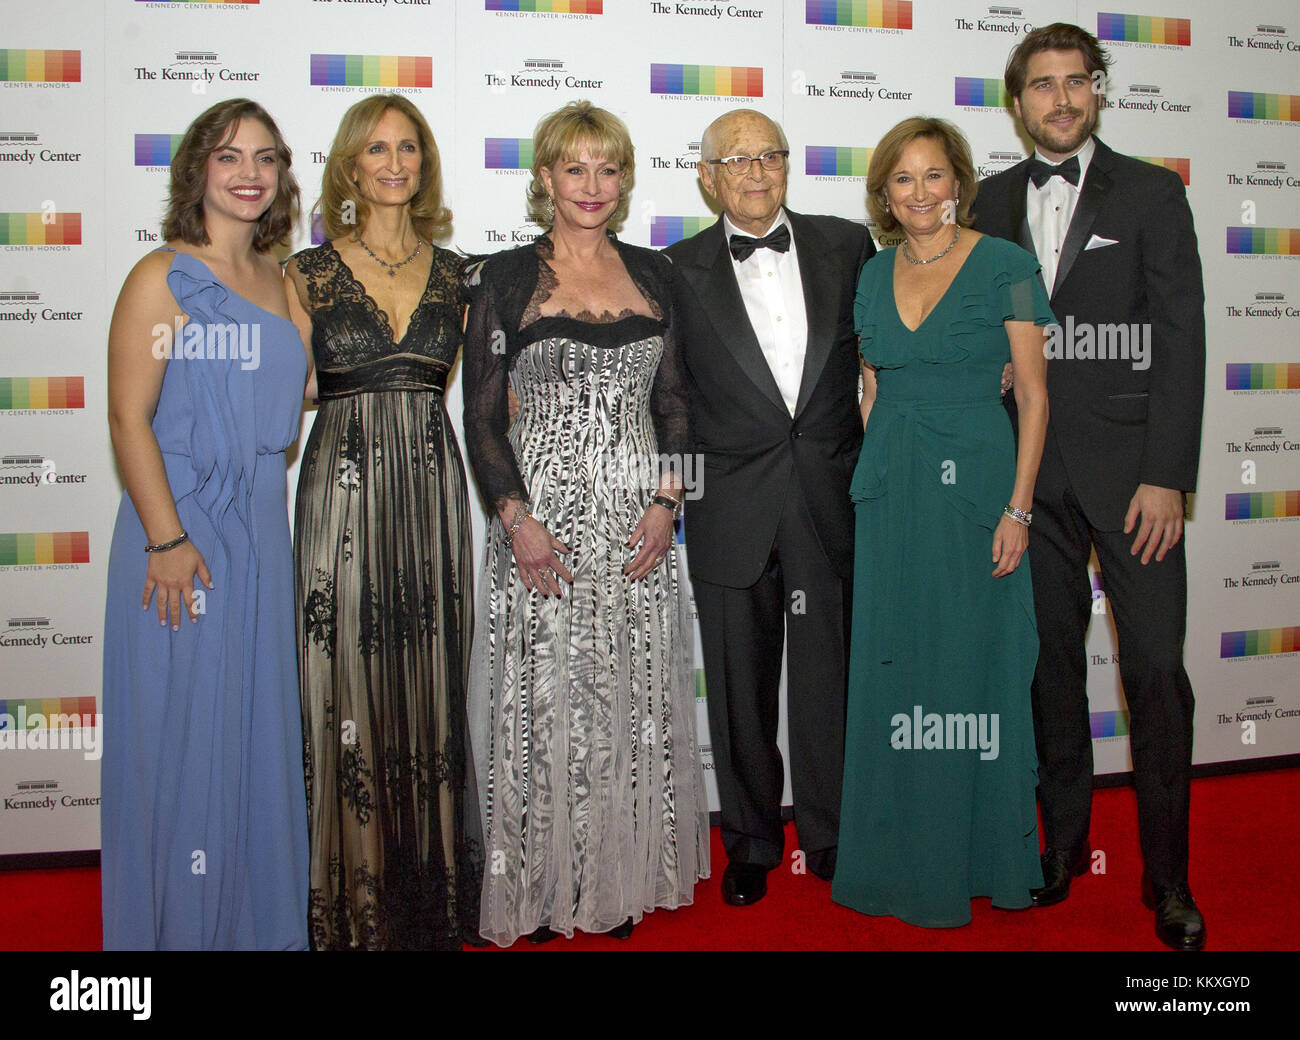 December 2, 2017 - Washington, District of Columbia, United States of America - Norman Lear and his family arrive - Stock Image